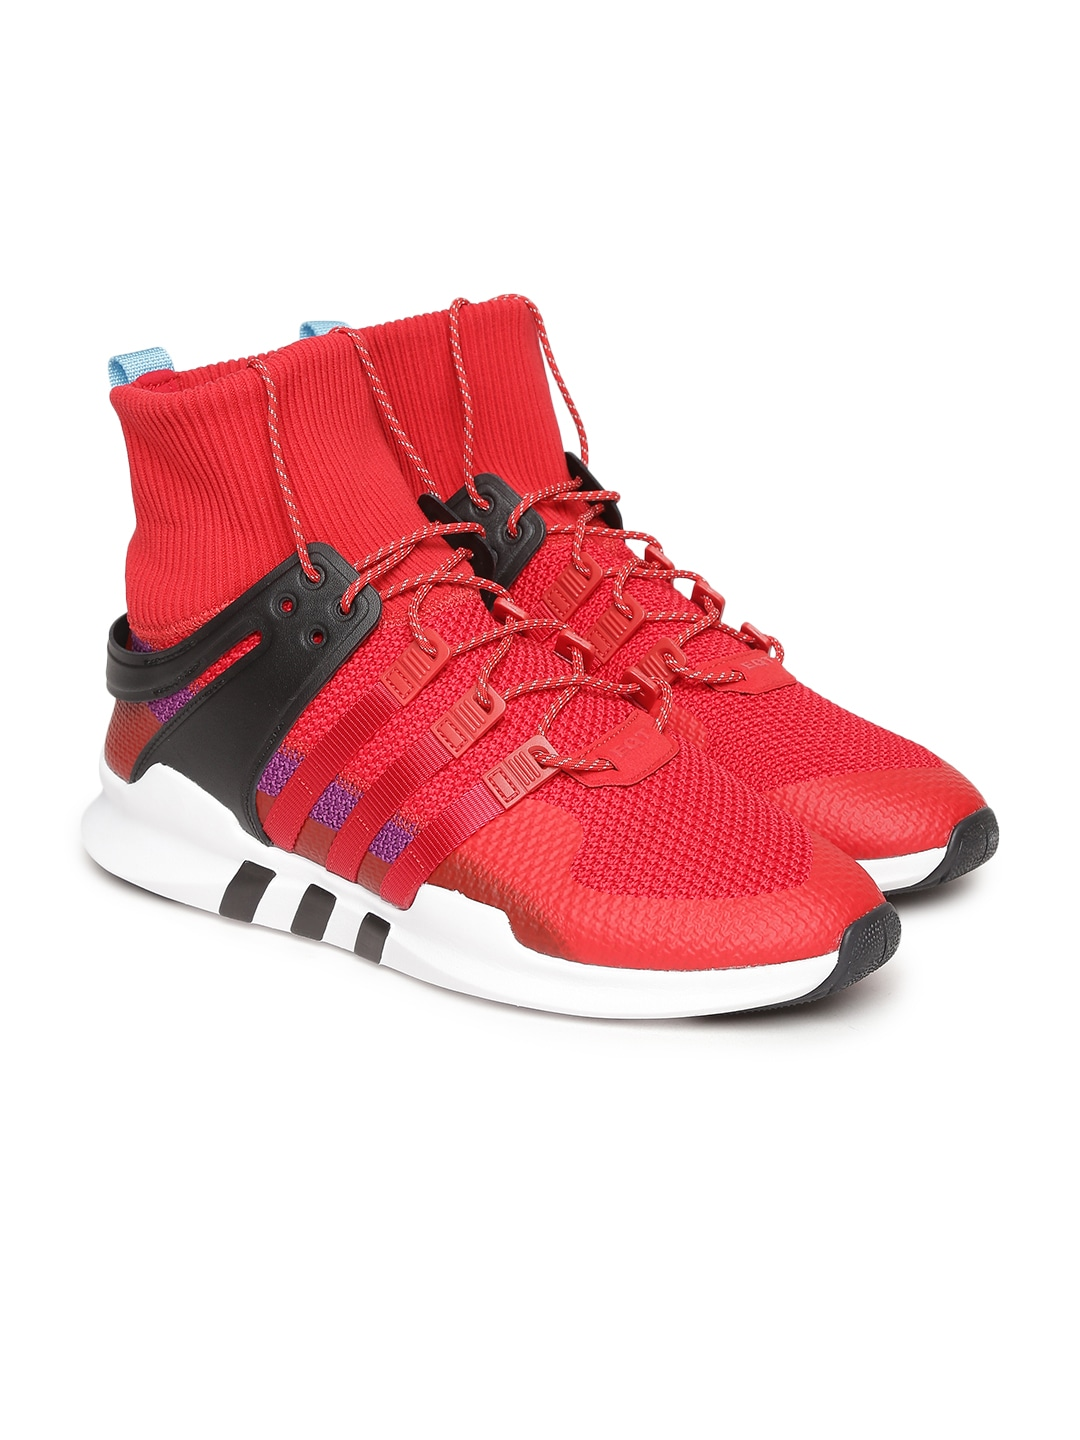 Red Leather High-Top EQT SUPPORT ADV WINTER Sneakers